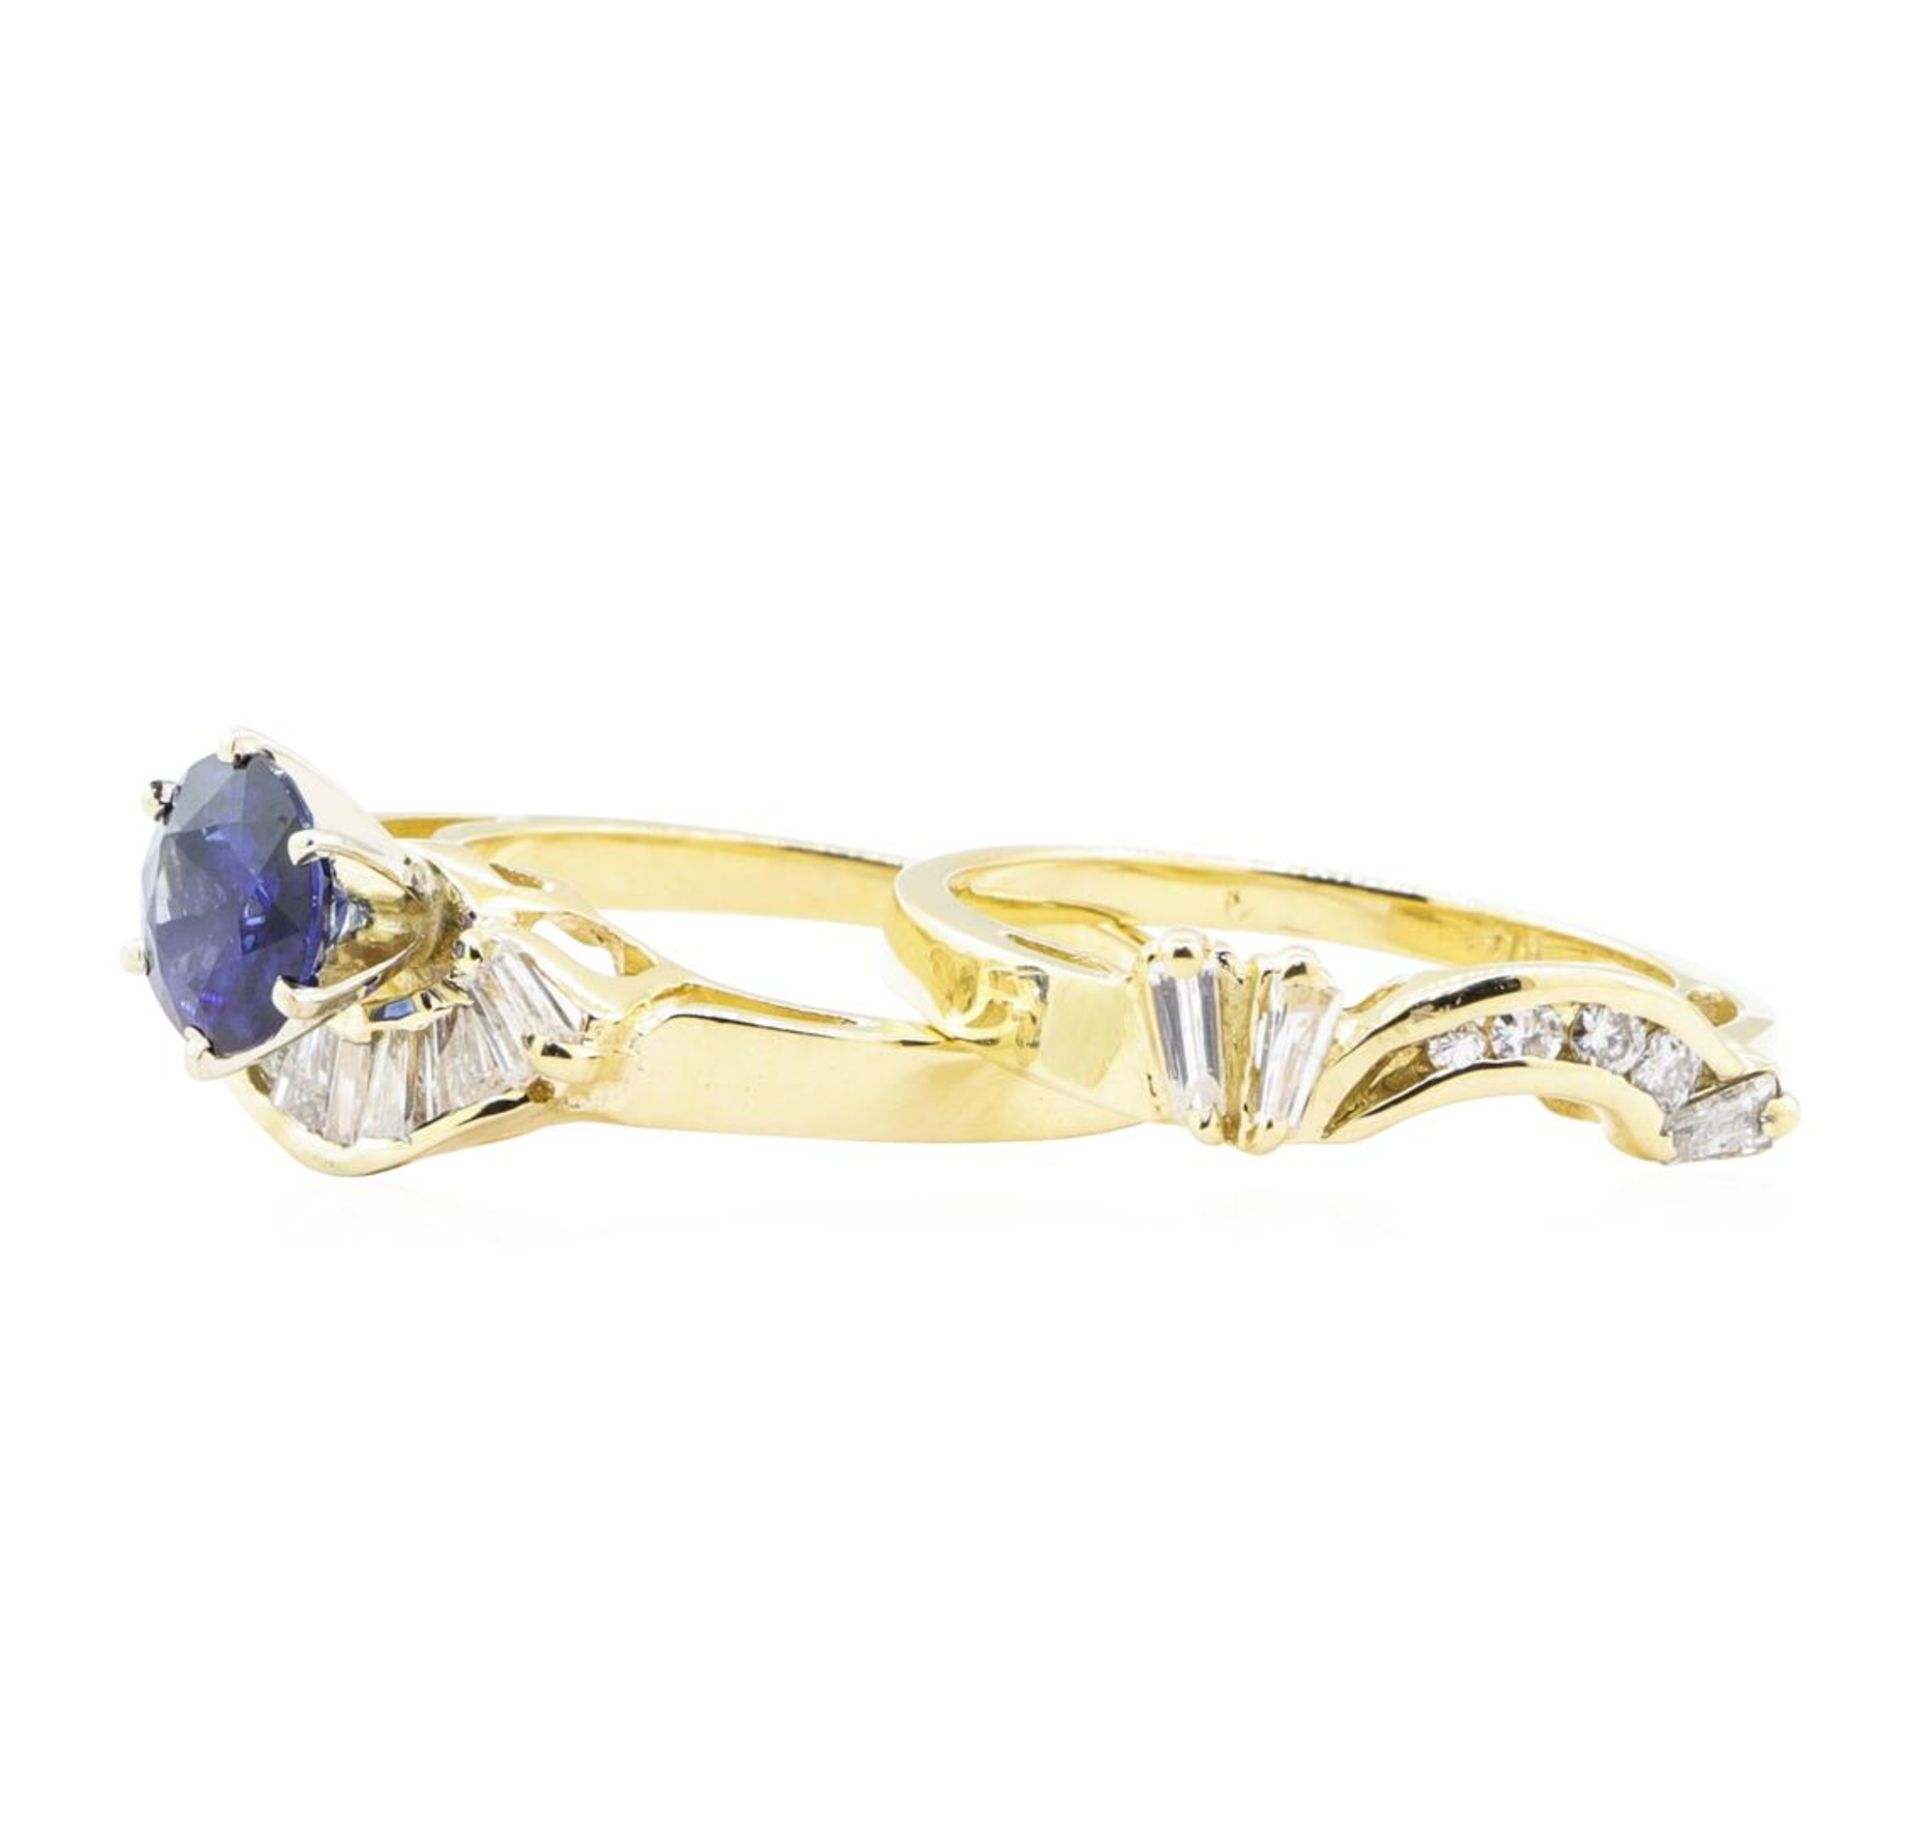 1.83 ctw Sapphire And Diamond Ring And Band - 14KT Yellow Gold - Image 3 of 4